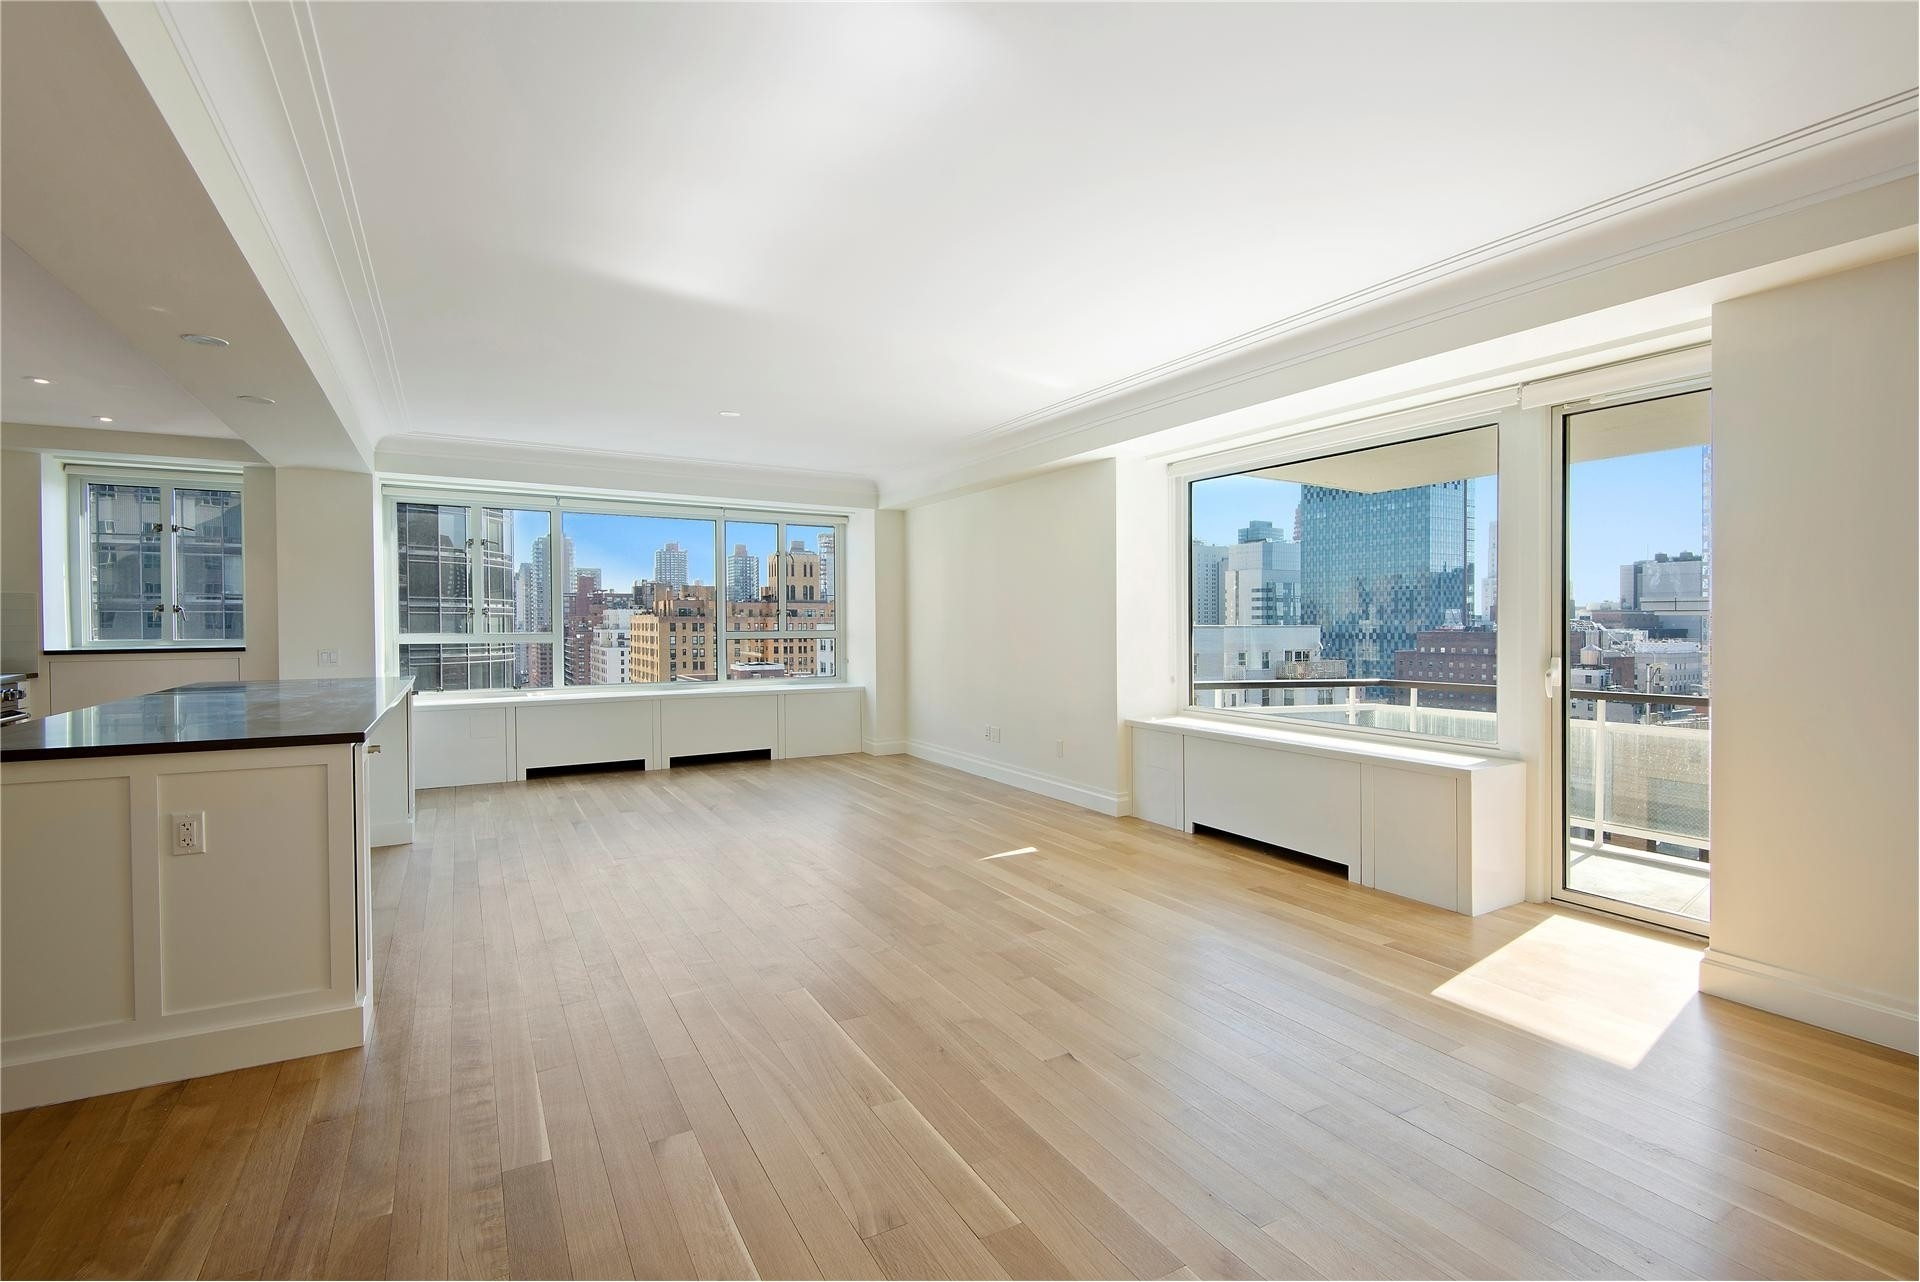 Property at 200 East 66th St, E1702 New York